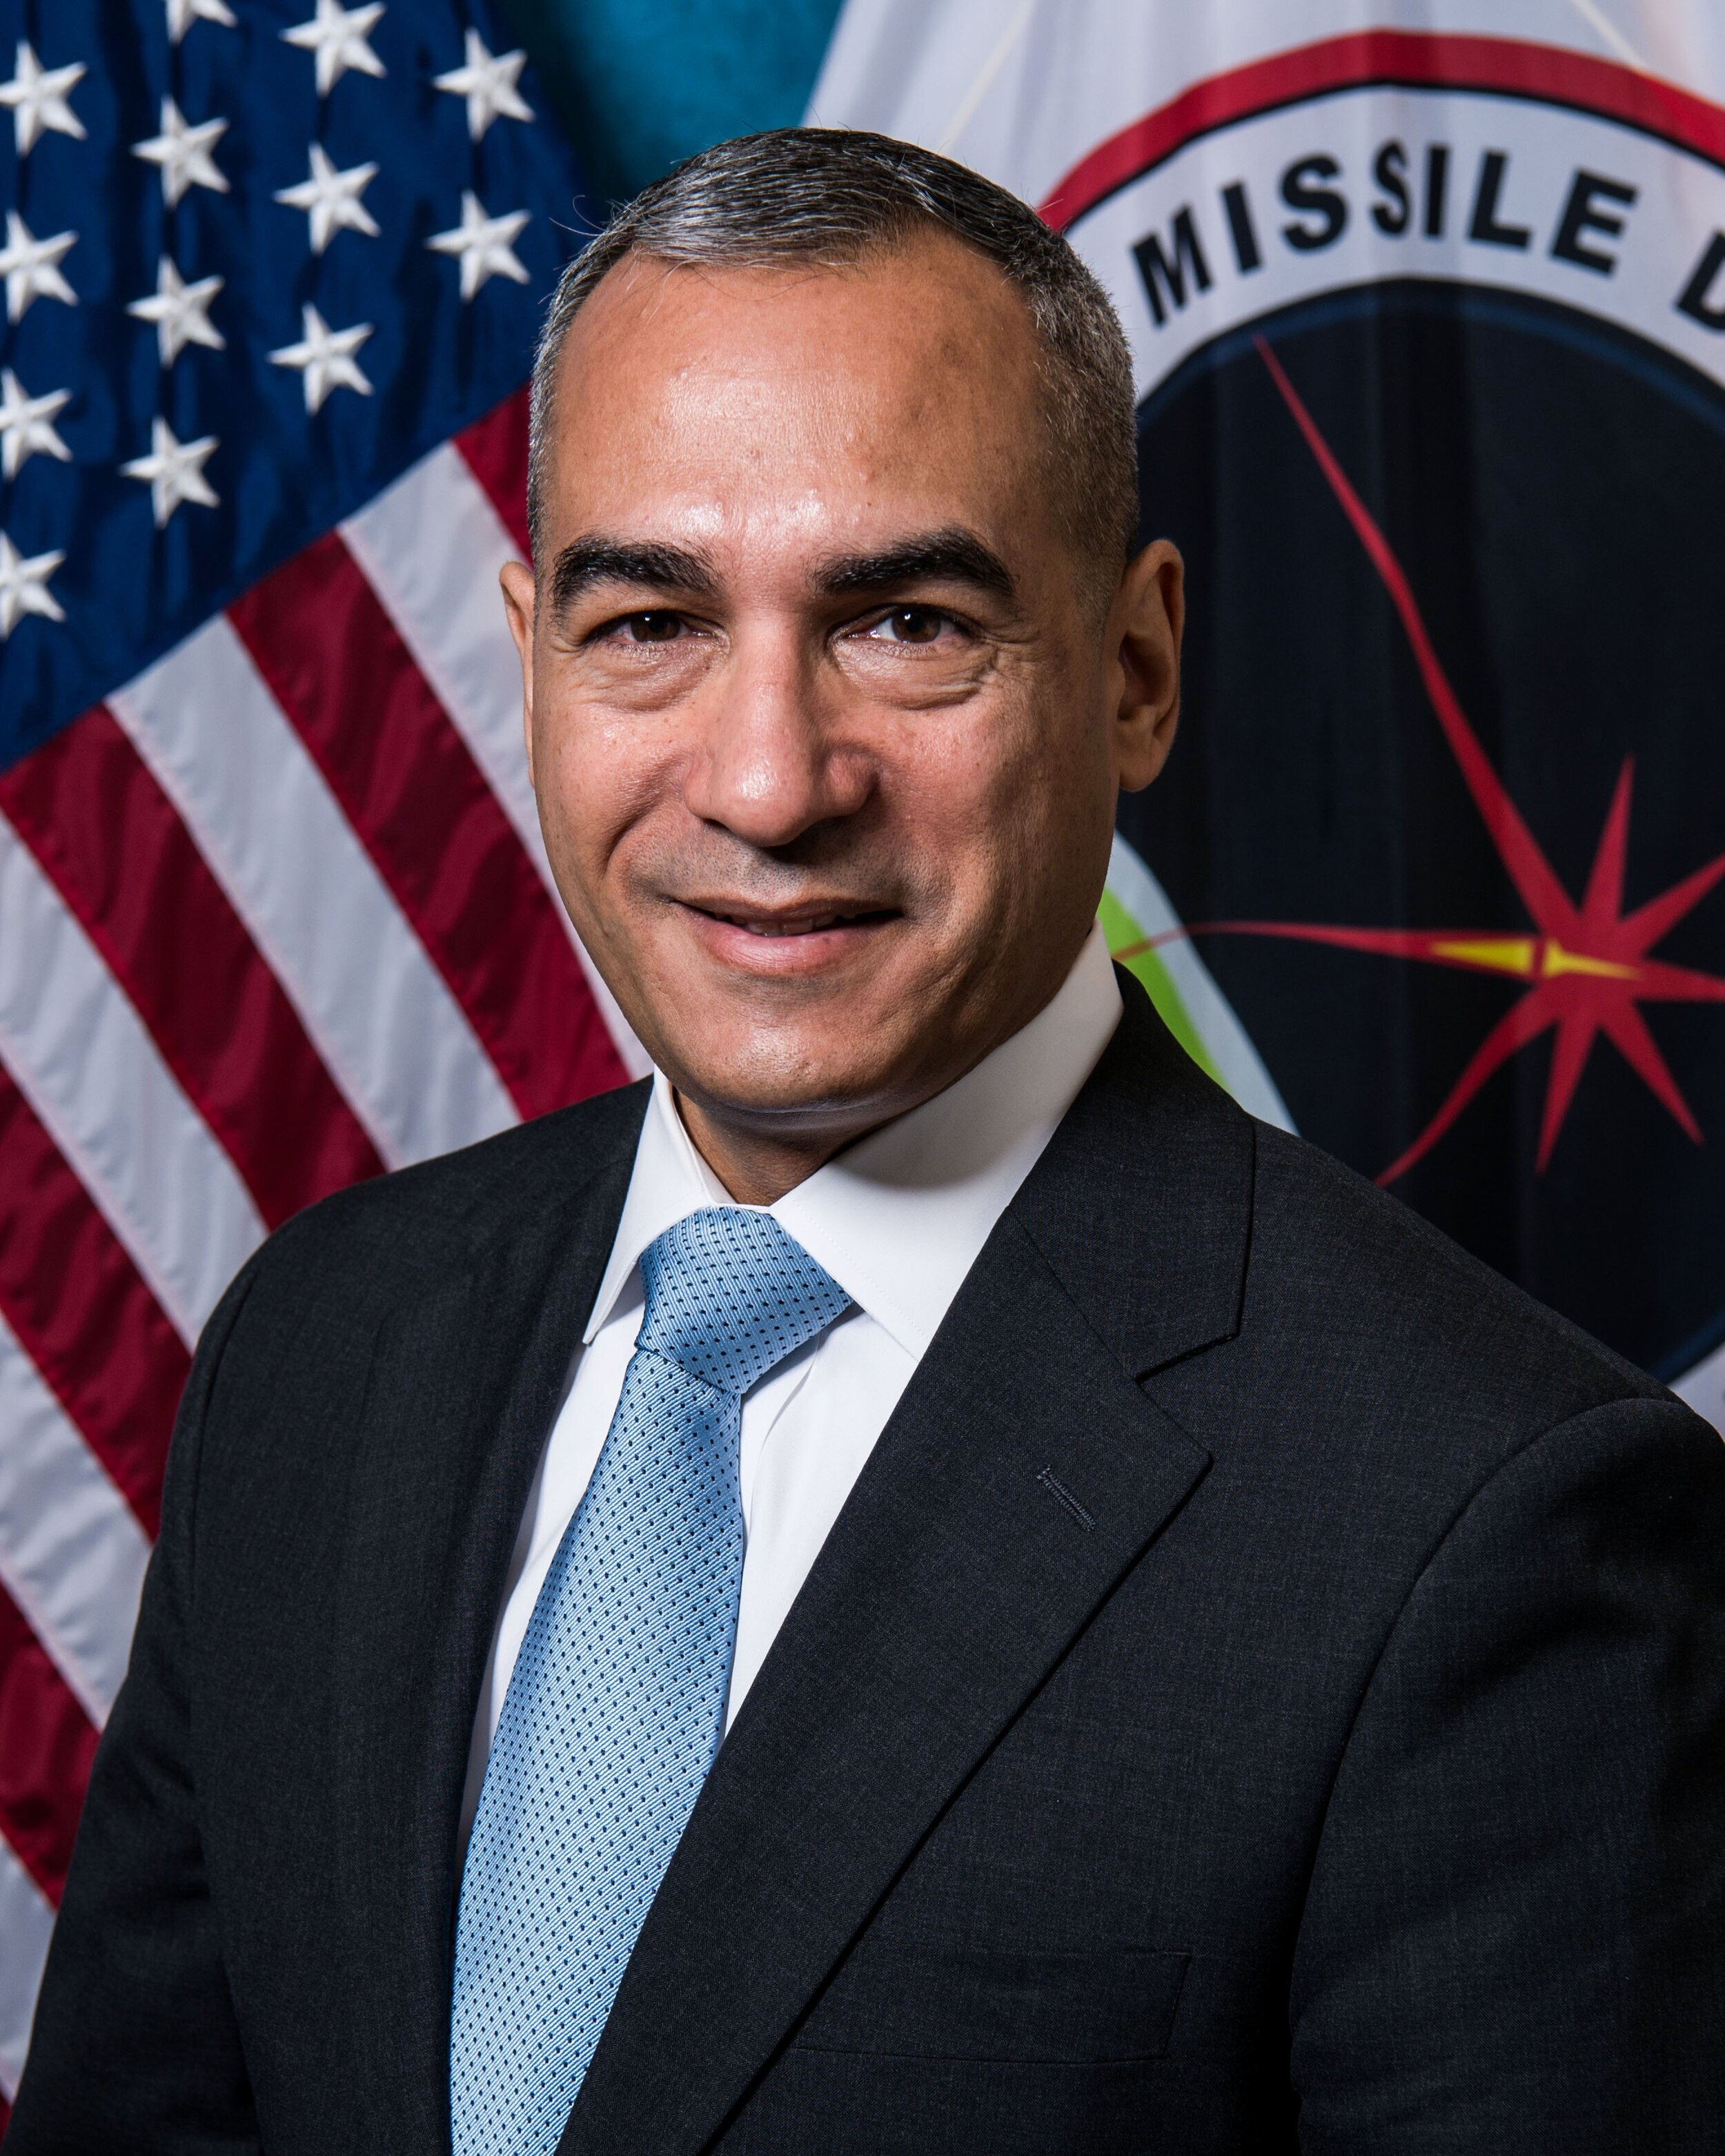 Paul J.Fontanez, Ph.D - Strategic Mission Area Lead-Core Engineering Director for Engineering,Systems Engineering Test RequirementsMissile Defense Agency